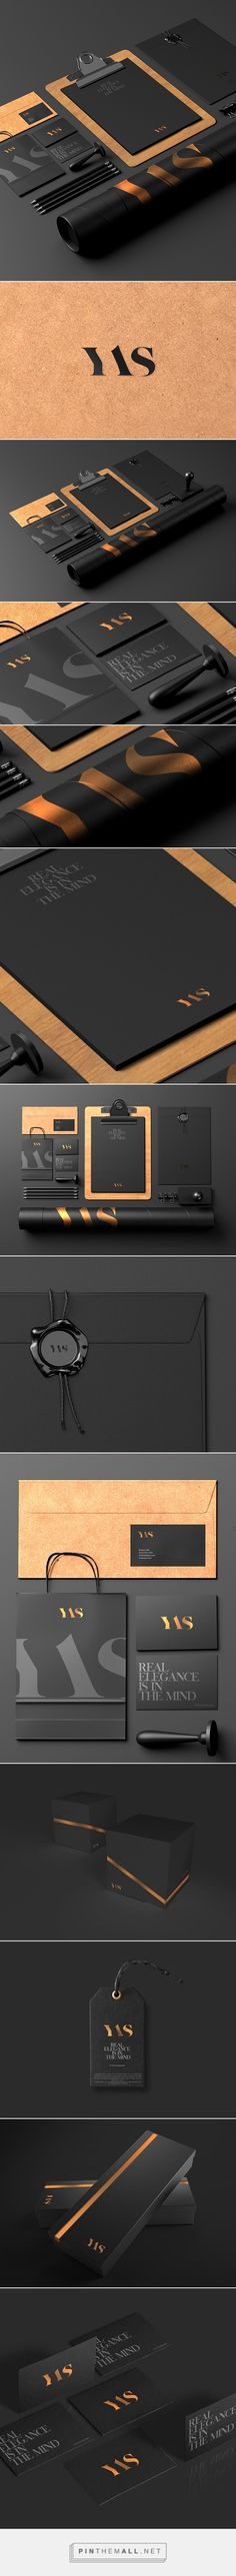 YAS - accessories for men on Behance by Sebastian Bednarek curated by Packaging Diva PD. This is gorgeous identity packaging branding.